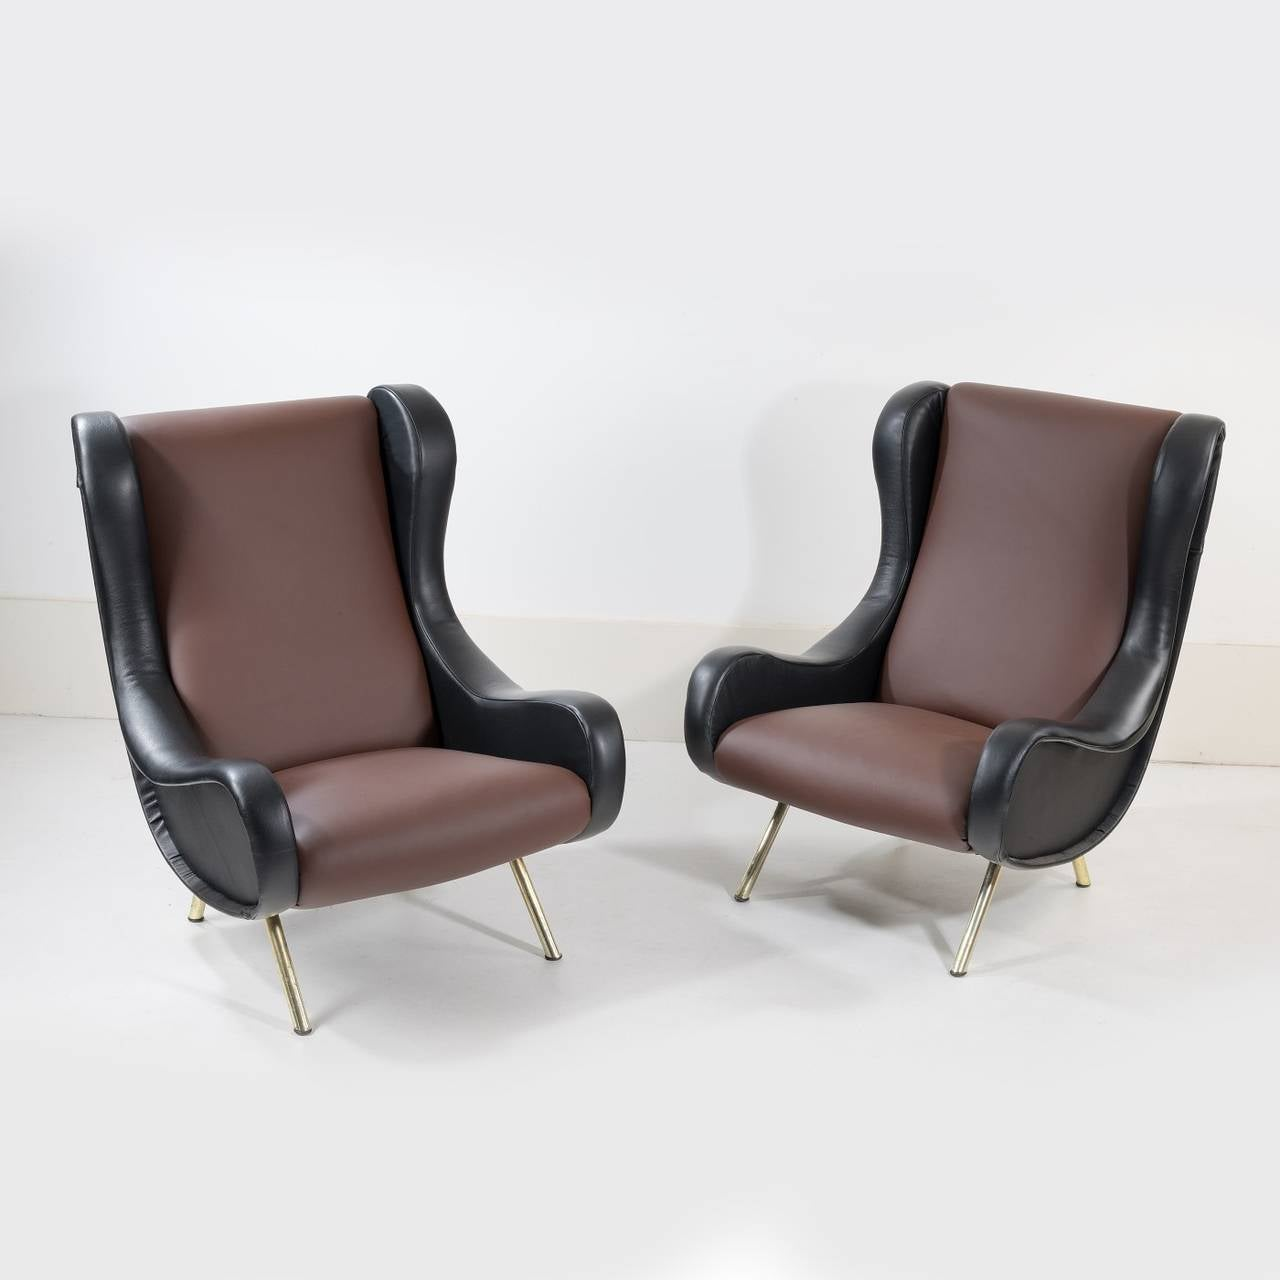 Pair of Armchairs, Model 'Senior' by Marco Zanuso 2